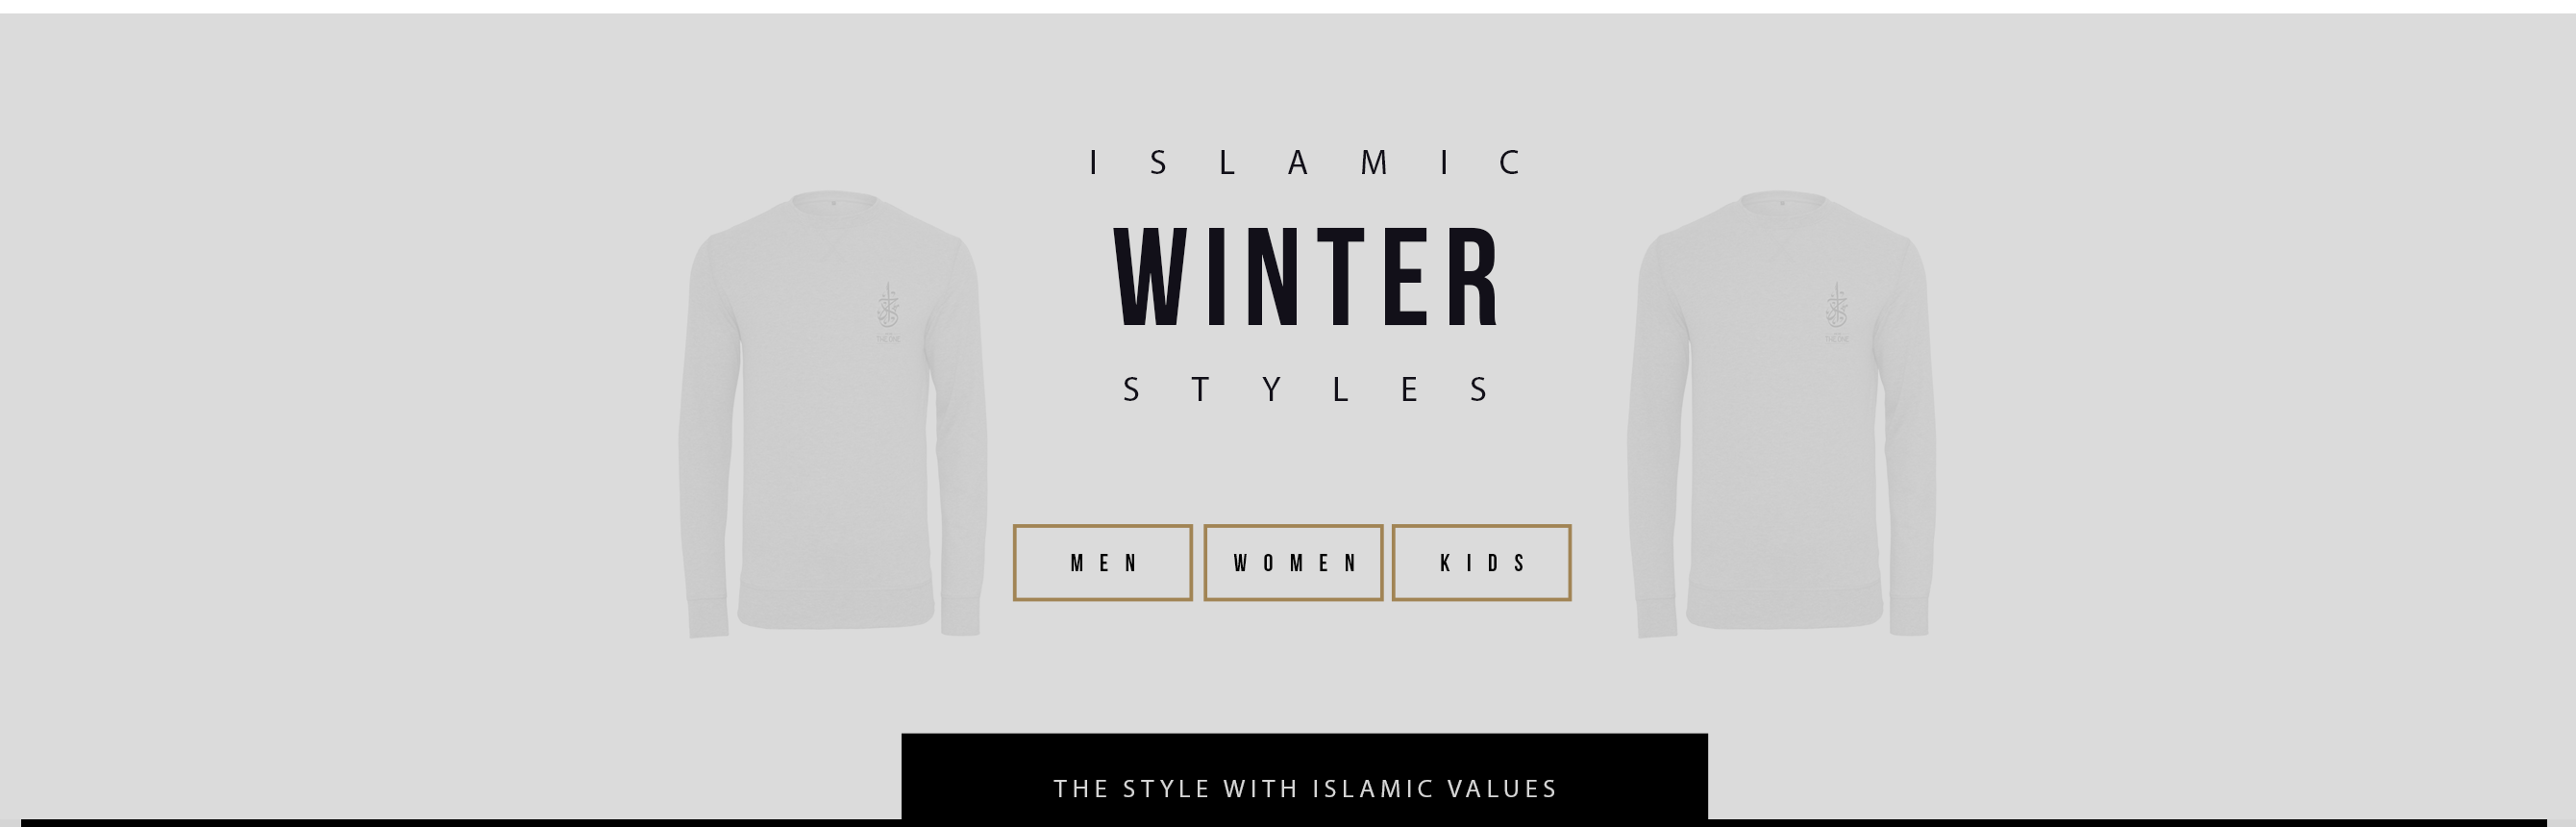 Islamic-winter-styles Ahad Startseite